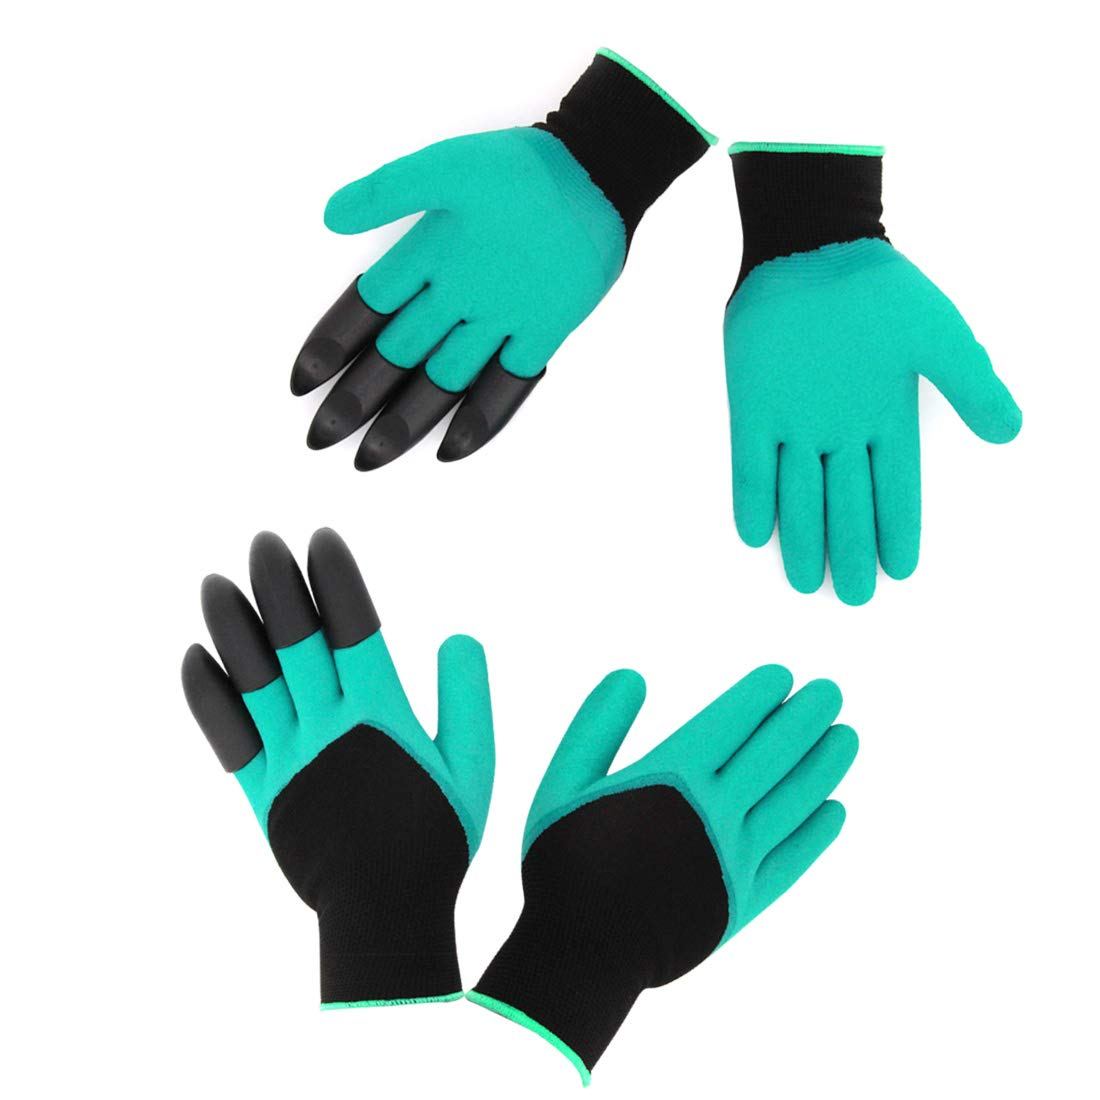 HAODE FASHION 2 Pairs Women Size Garden Gloves Small with Fingertips Claws on Each Hand- for Right & Left Hands- for Digging and Planting- for Rose Pruning- Best Gift for Gardener(XS -Women, Kids)